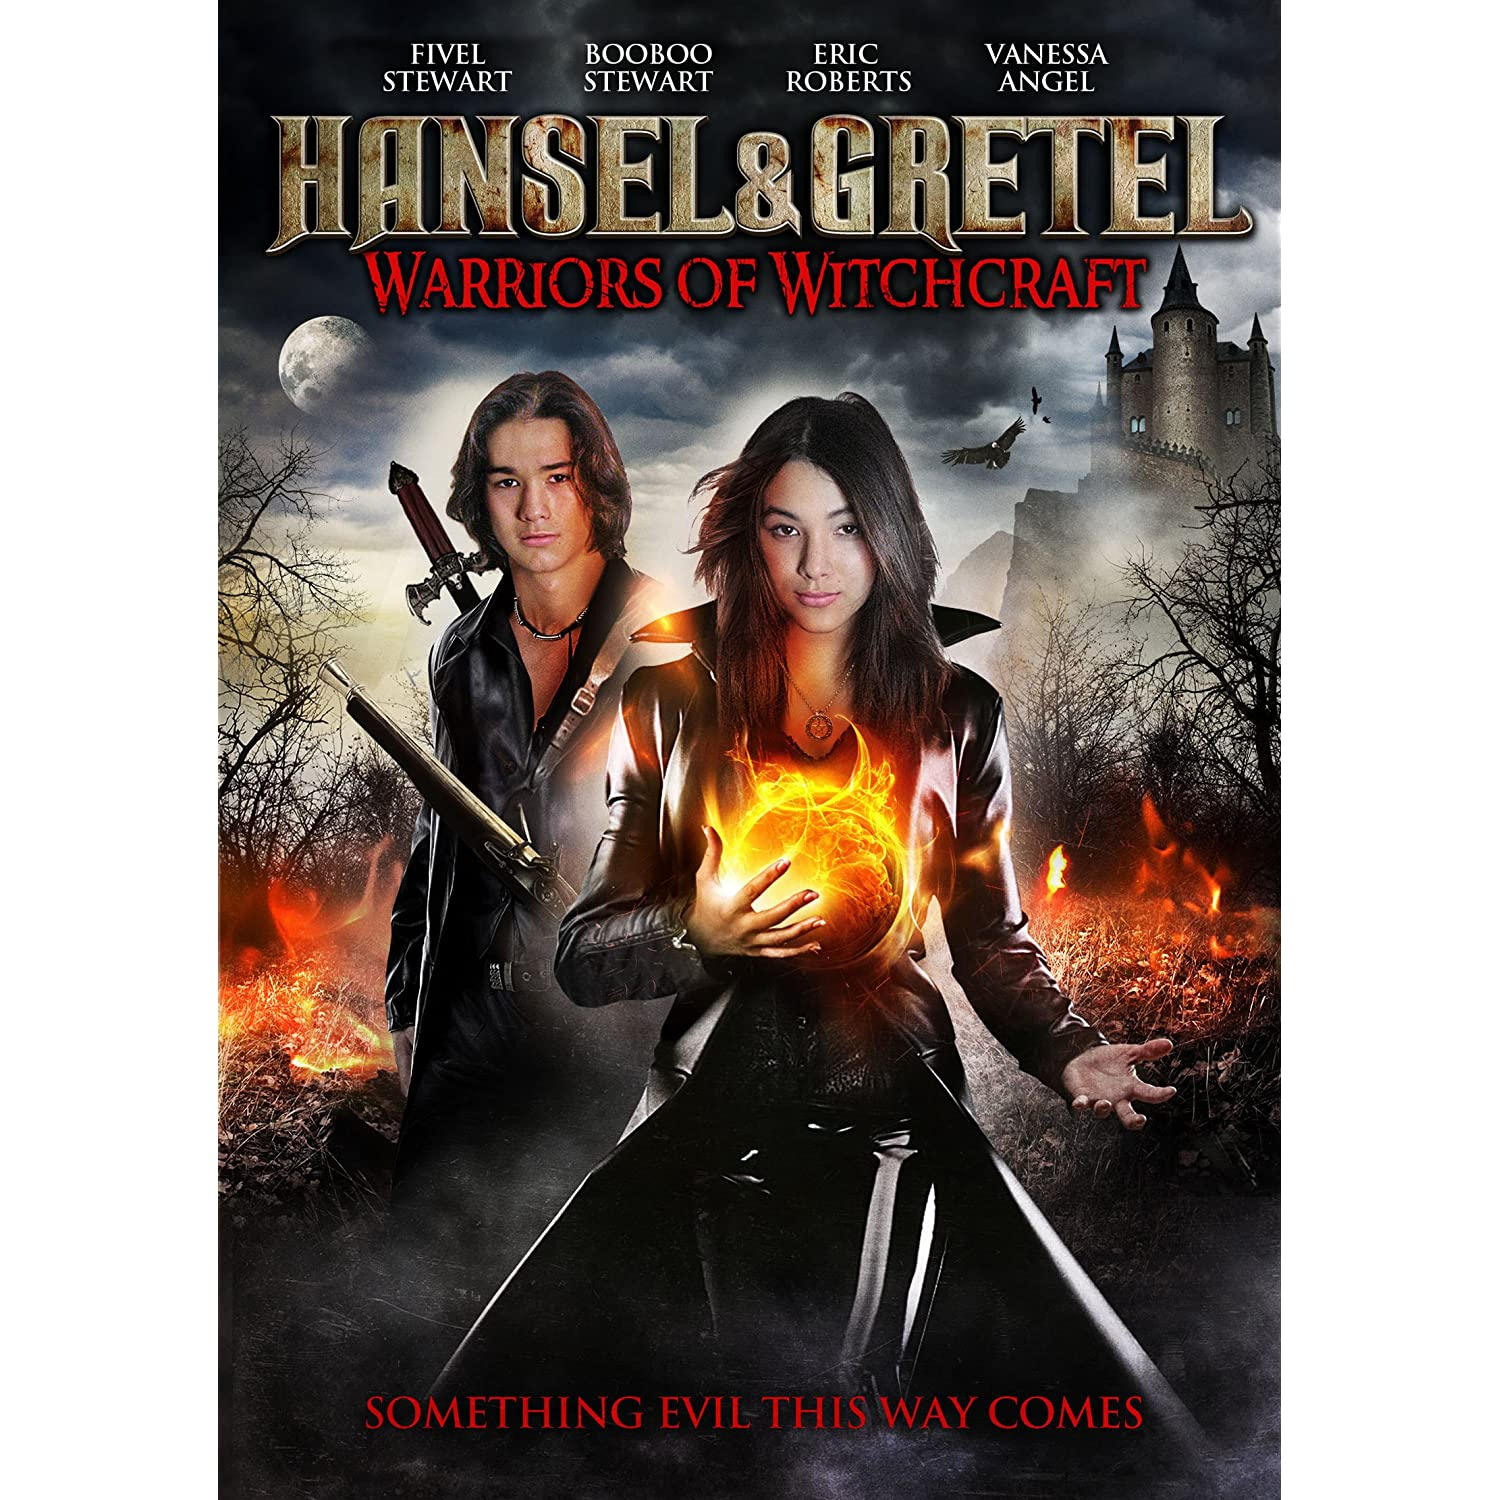 One Star Wednesdays: Hansel and Gretel Knockoff Edition